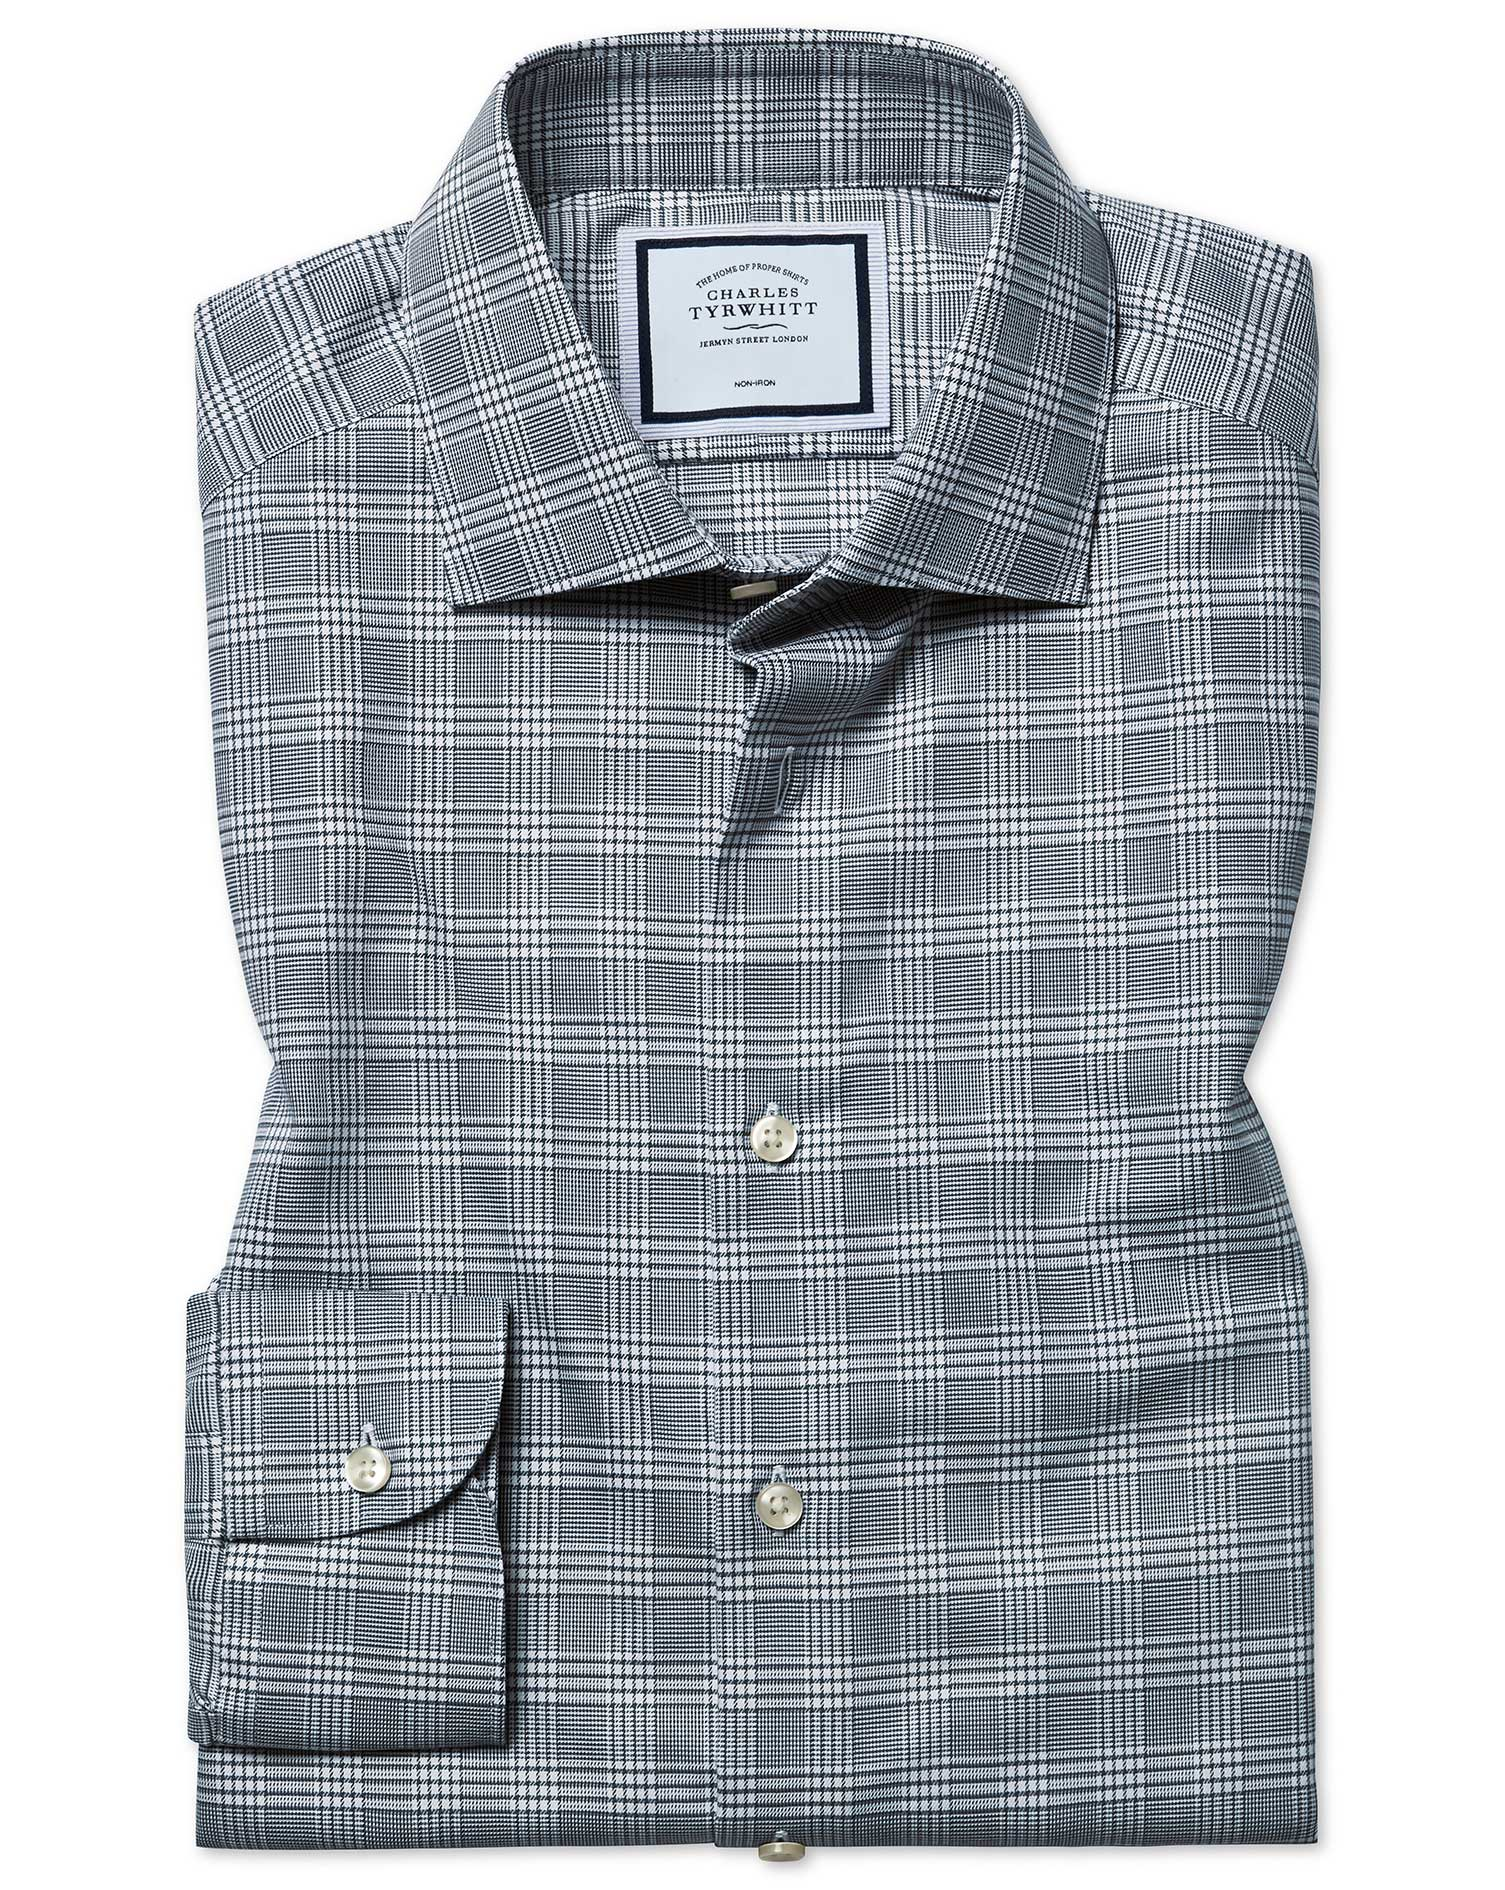 Cotton Slim Fit Non-Iron Natural Stretch Prince Of Wales Check Grey Shirt